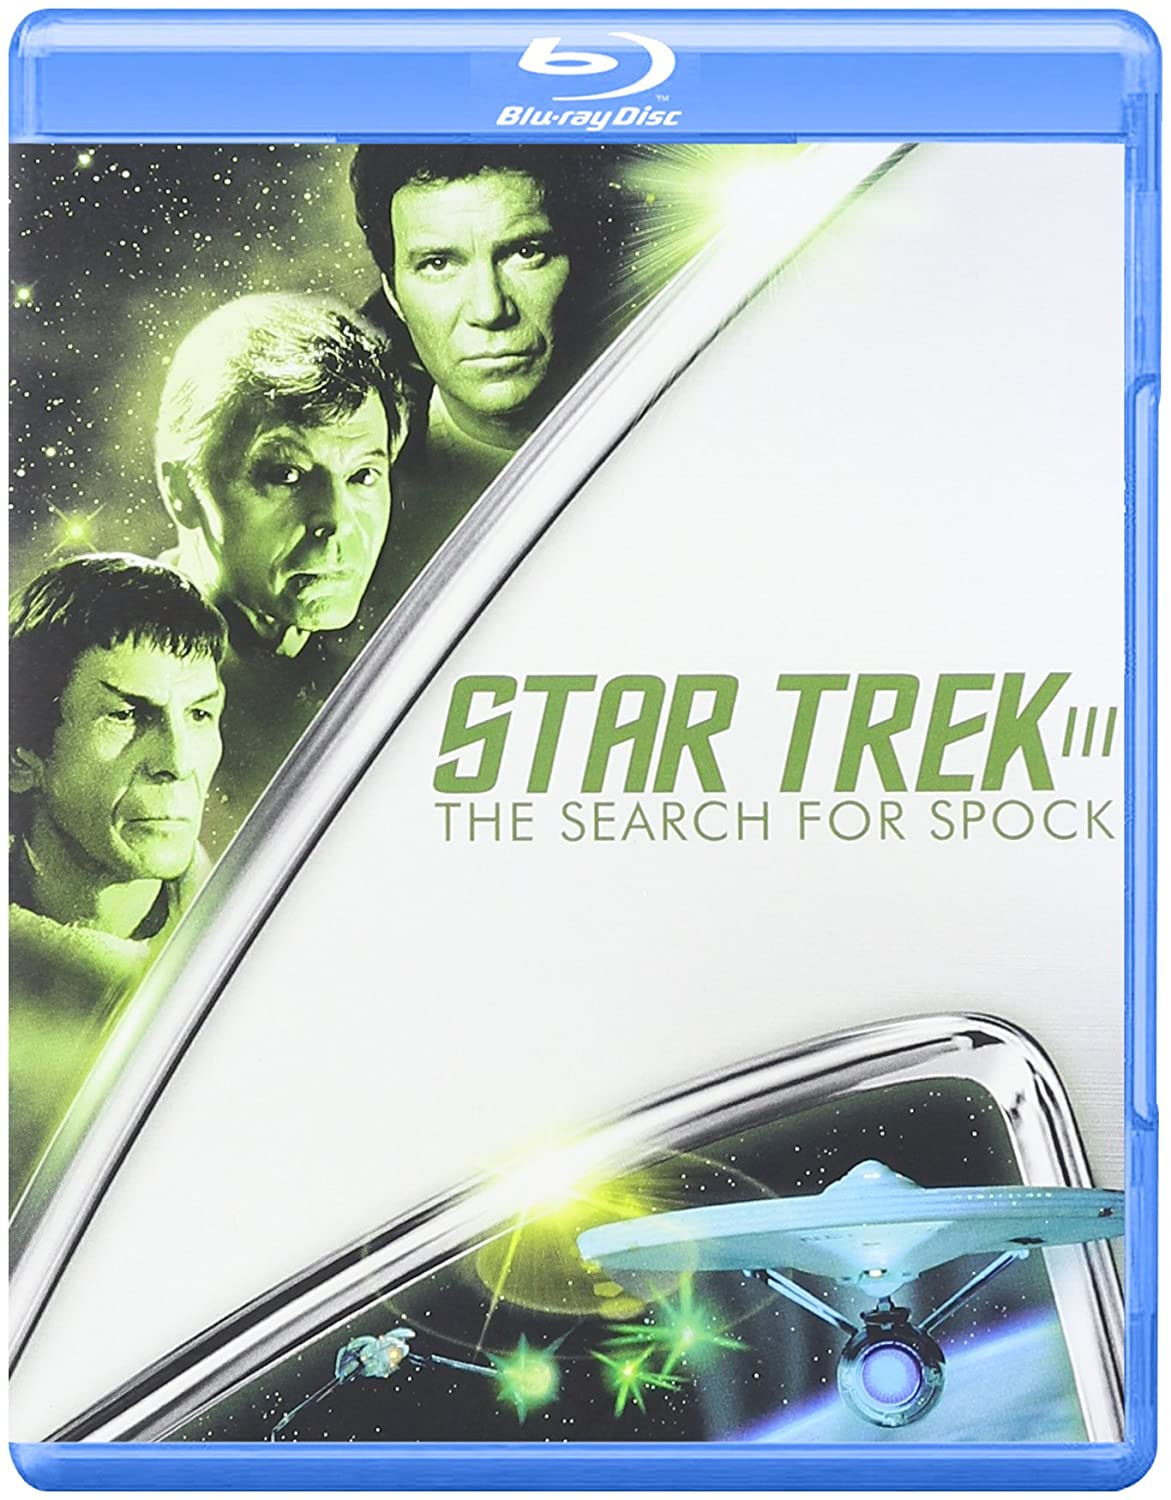 Star Trek III:The Search for Spock [Blu-ray]